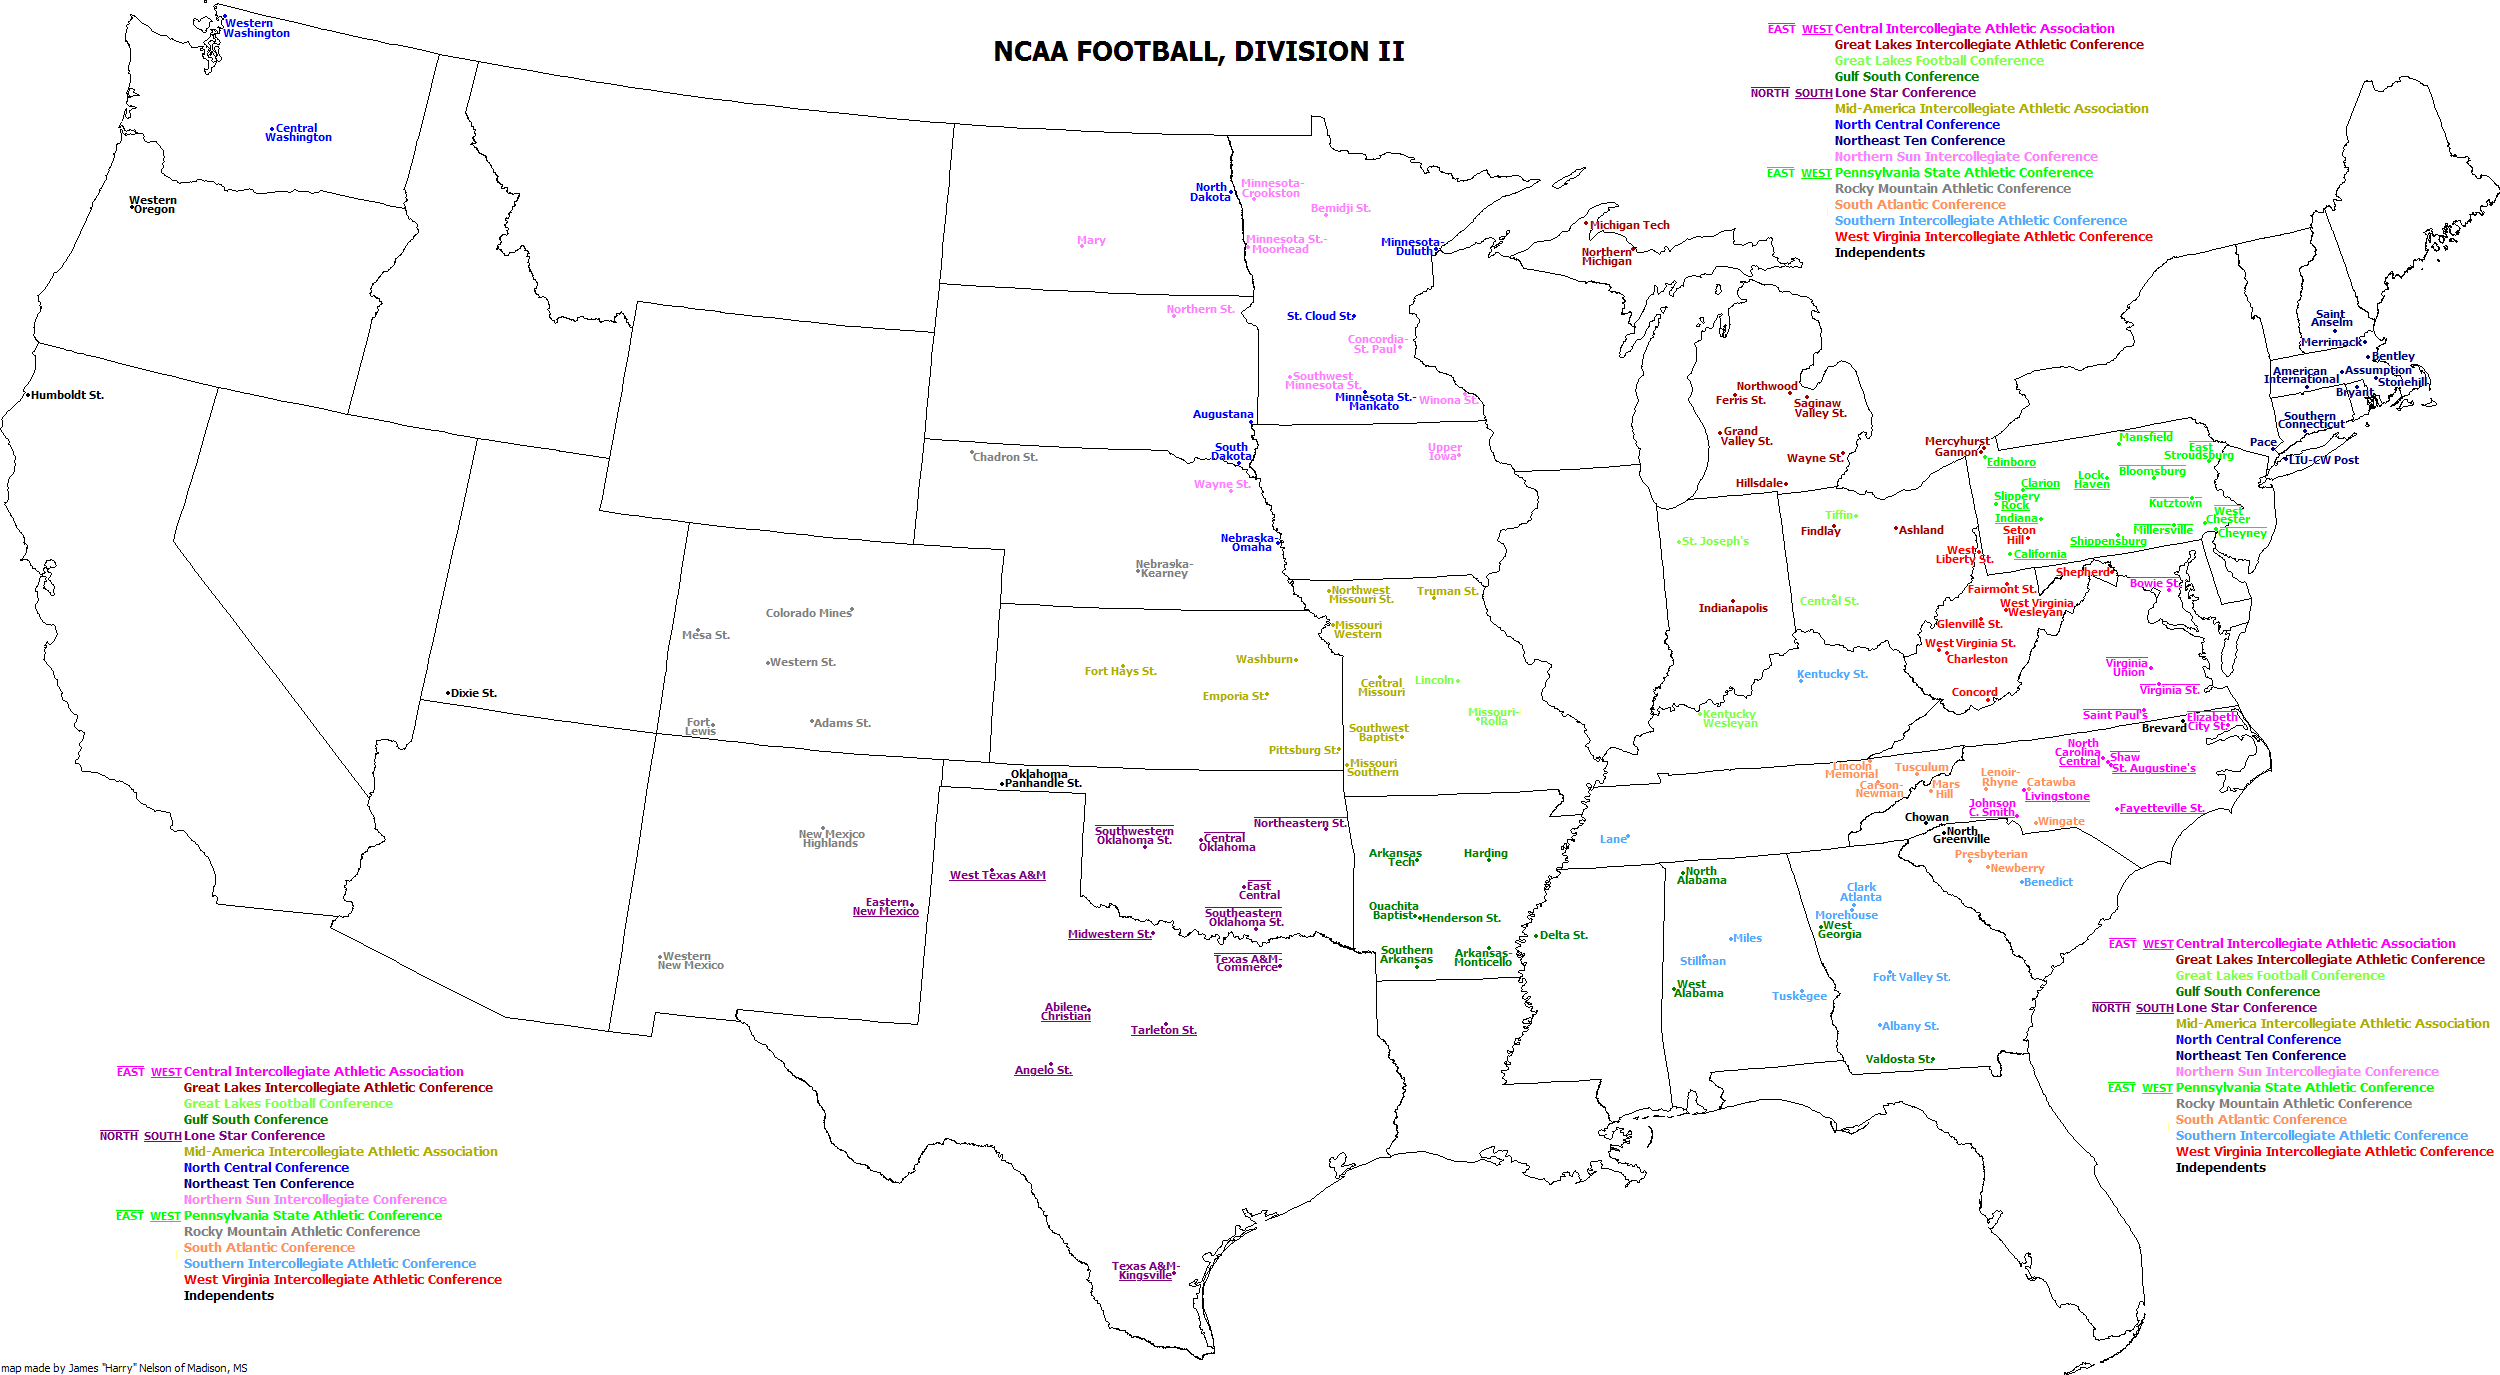 File:Map of National Collegiate Athletic Association Division II